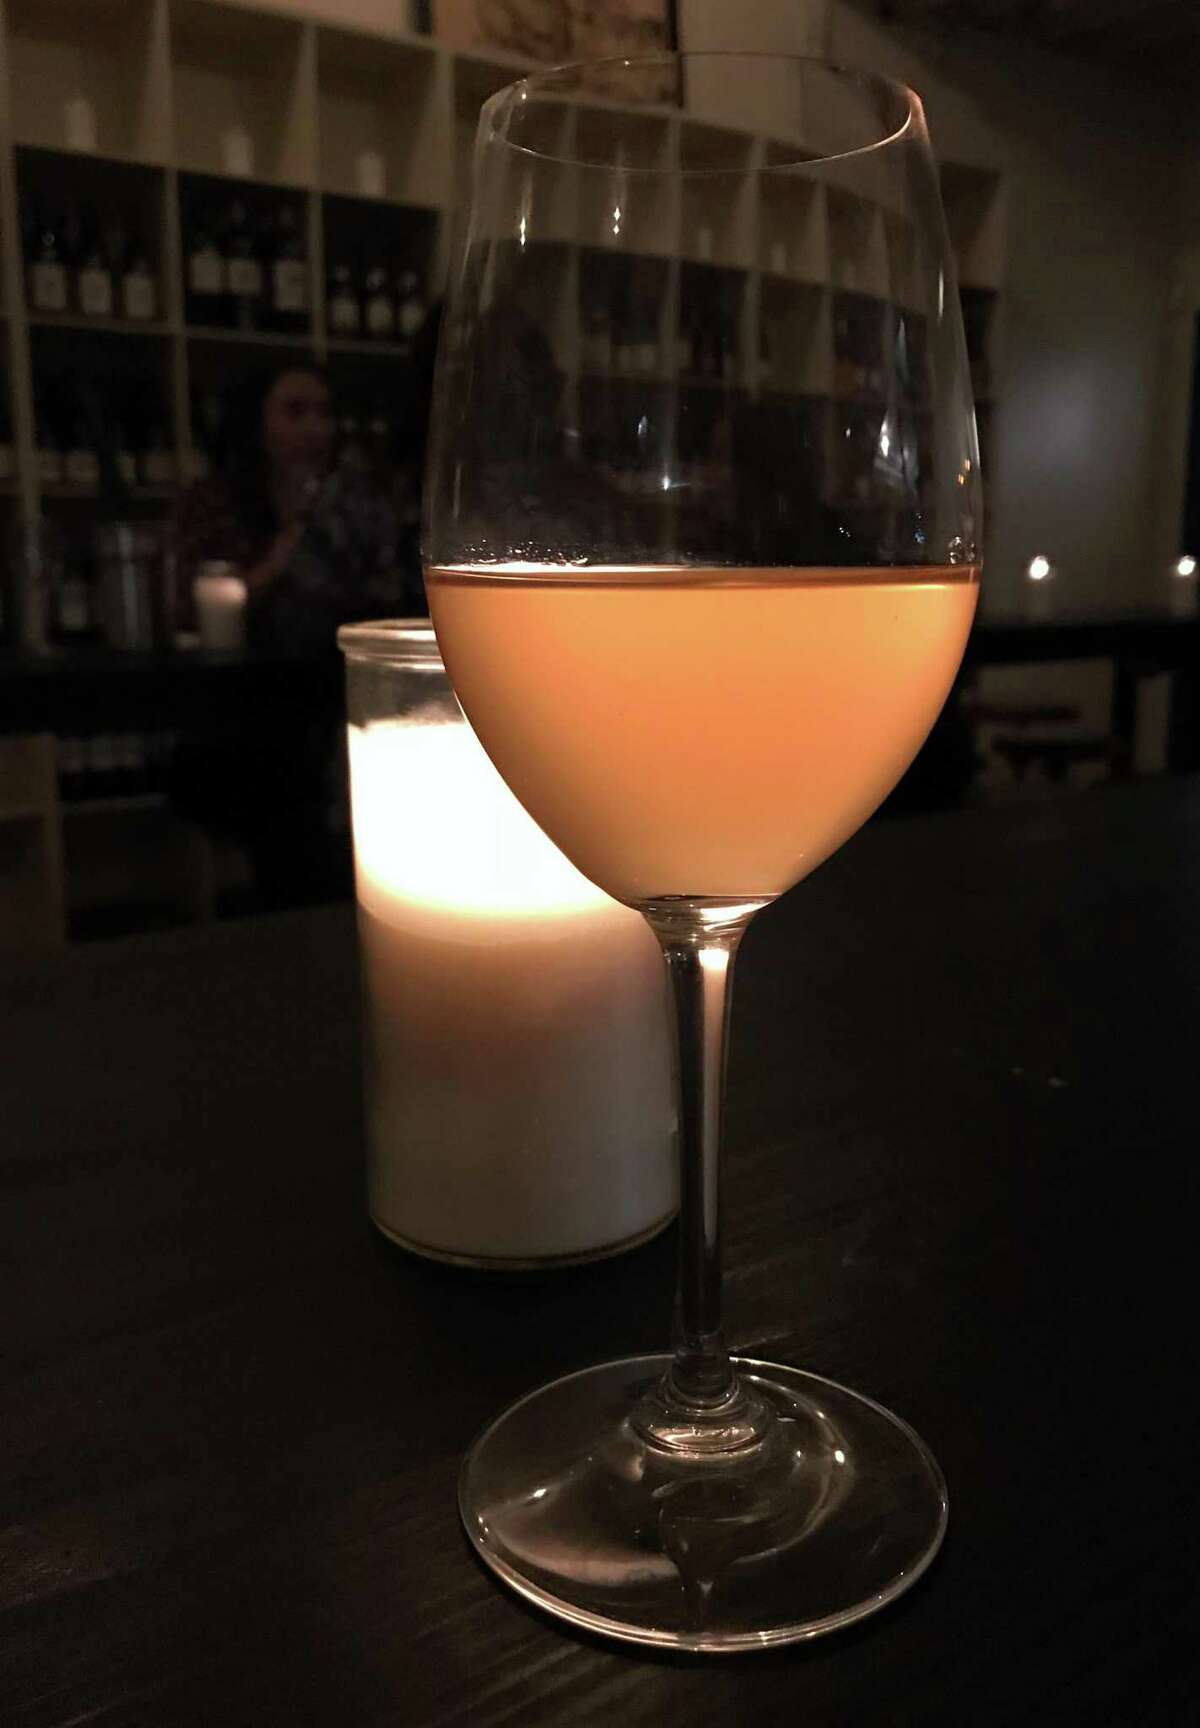 A glass of orange wine made by the German producer Enderle & Moll served at the new St. Mary's Strip wine bar Little Death